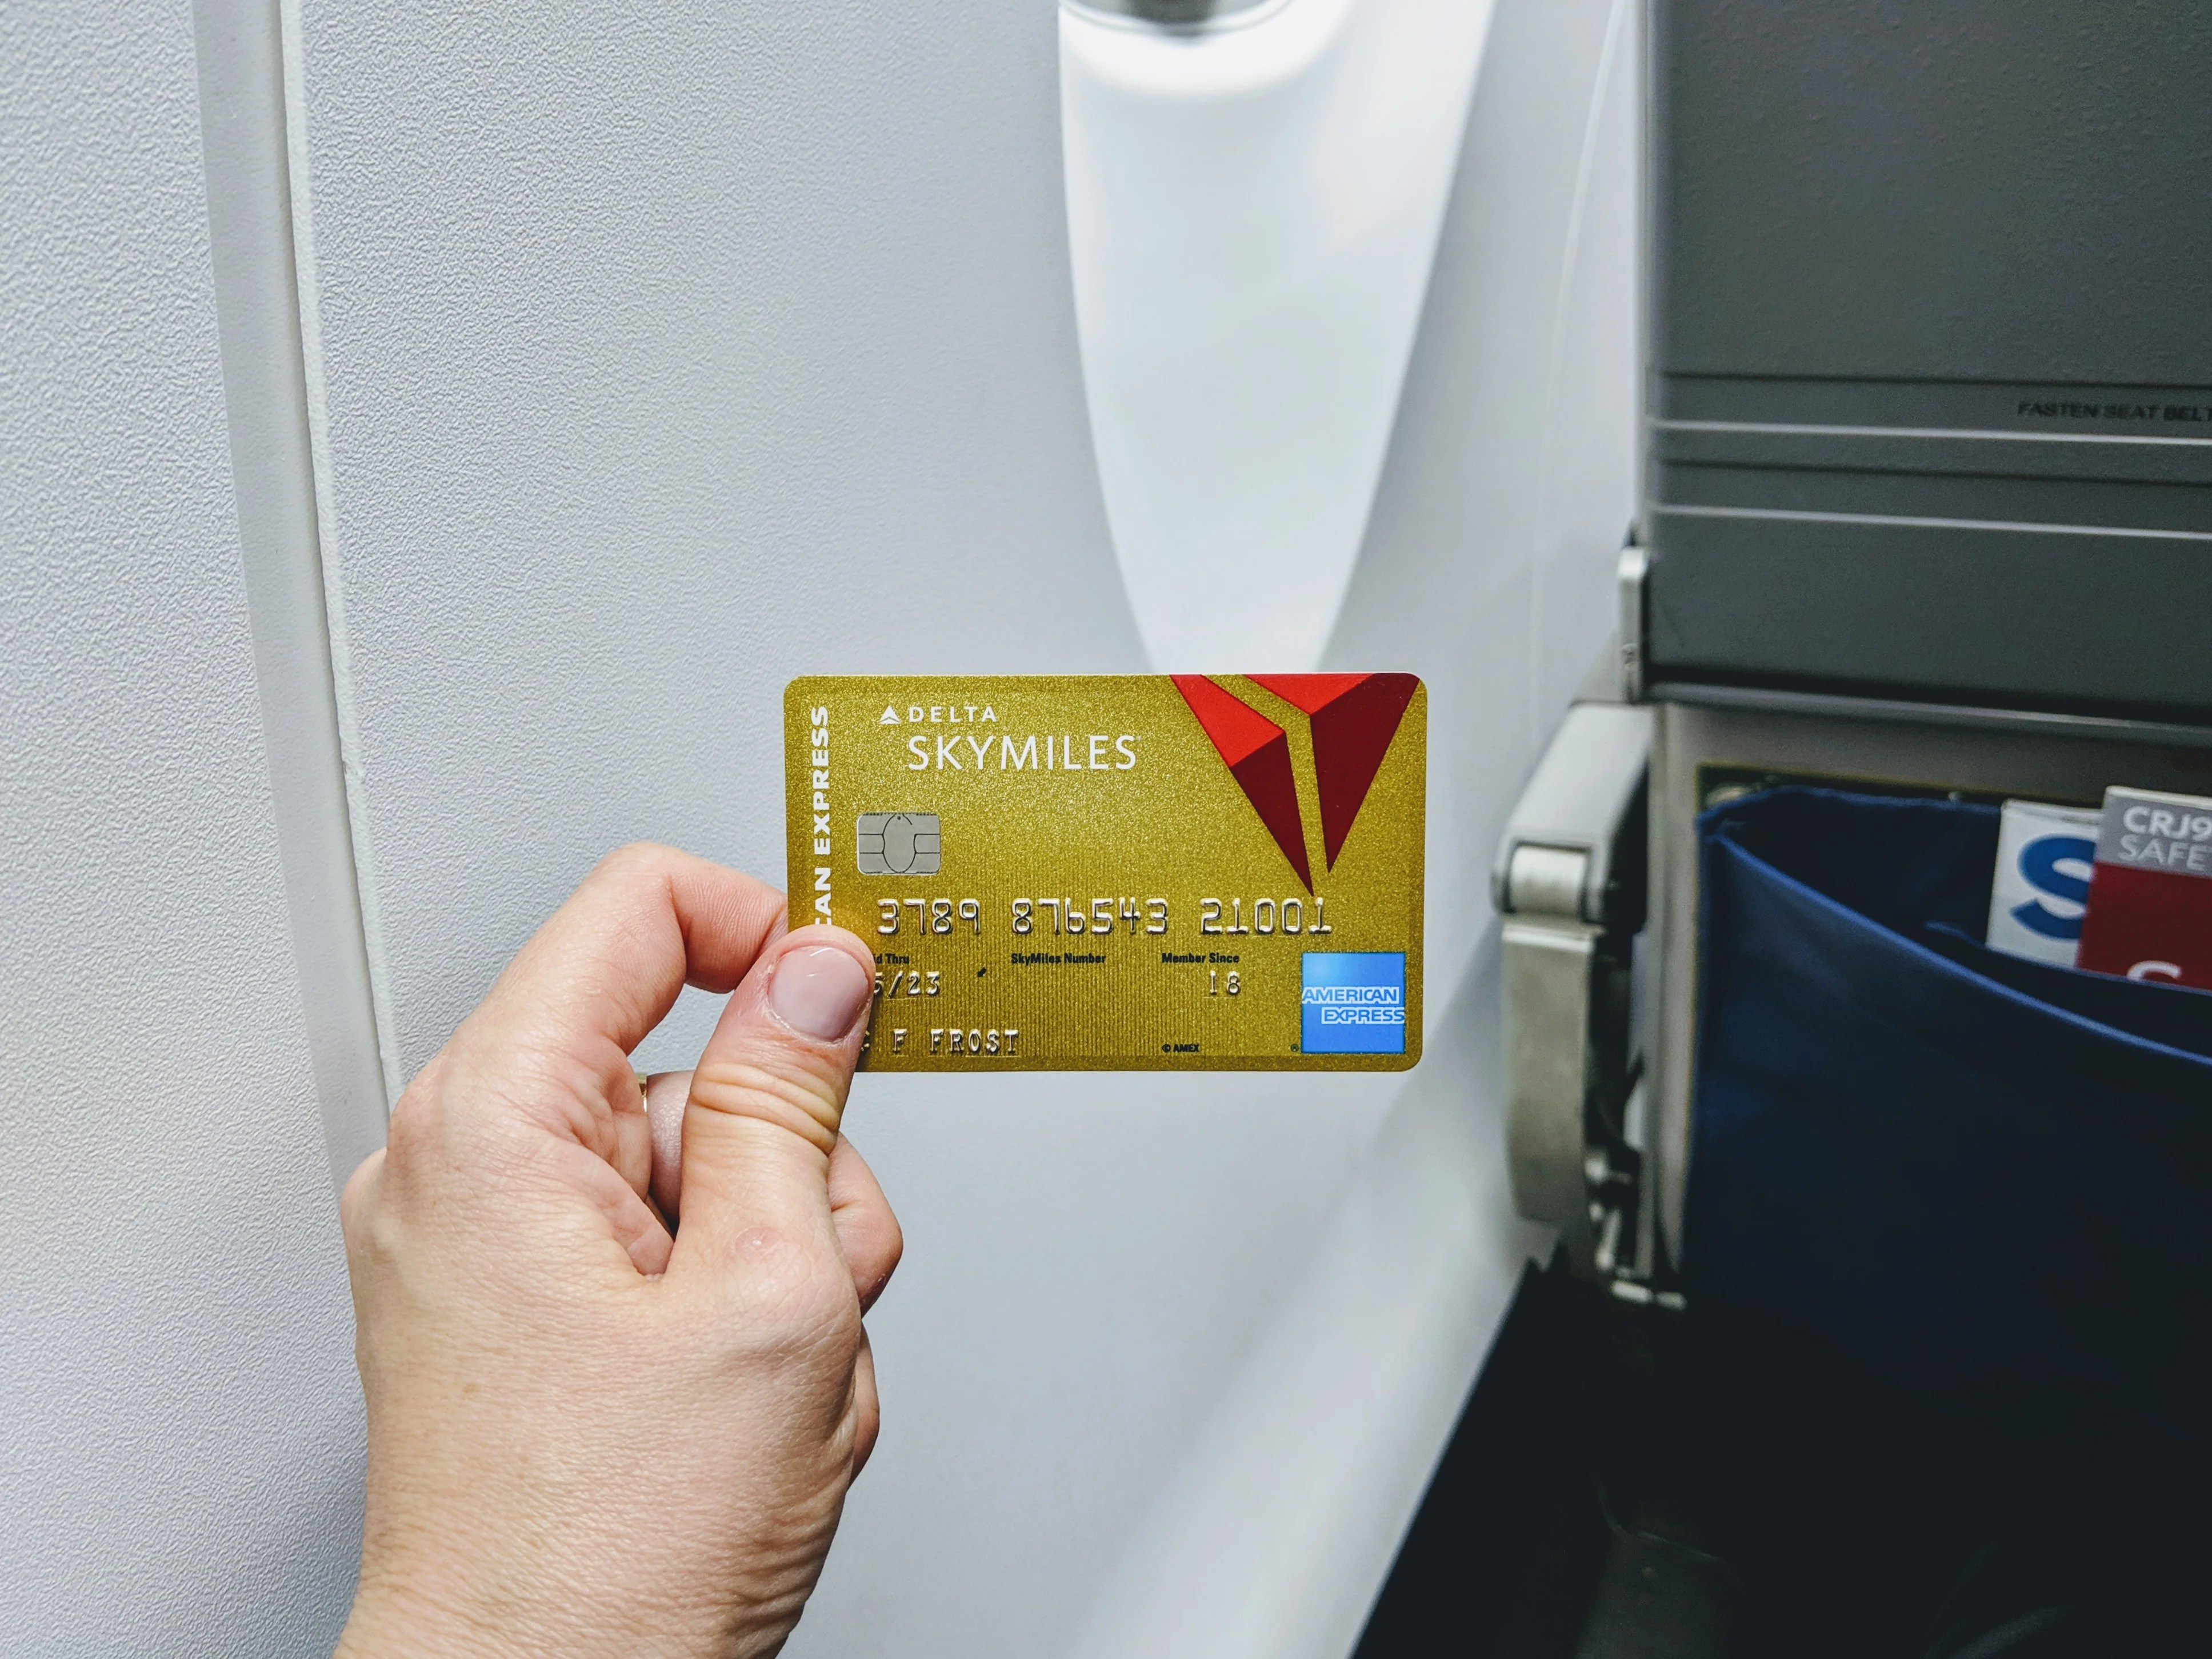 Targeted: 70,000-Point Welcome Bonus On The Gold Delta Amex